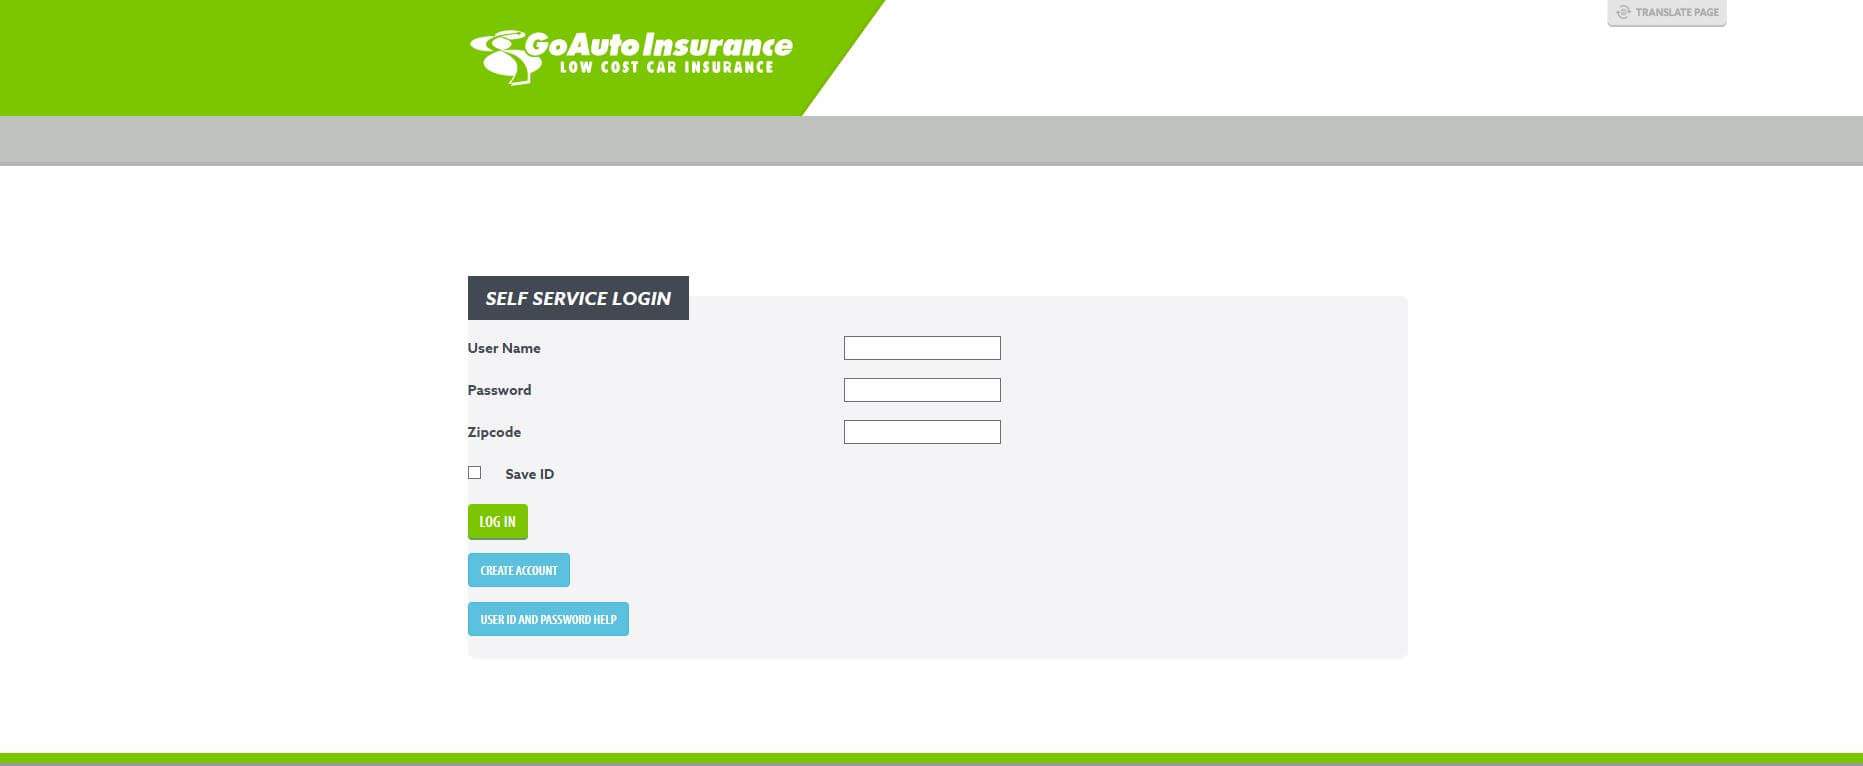 GoAuto Insurance Login, Payment, Claim and Customer Service Contacts